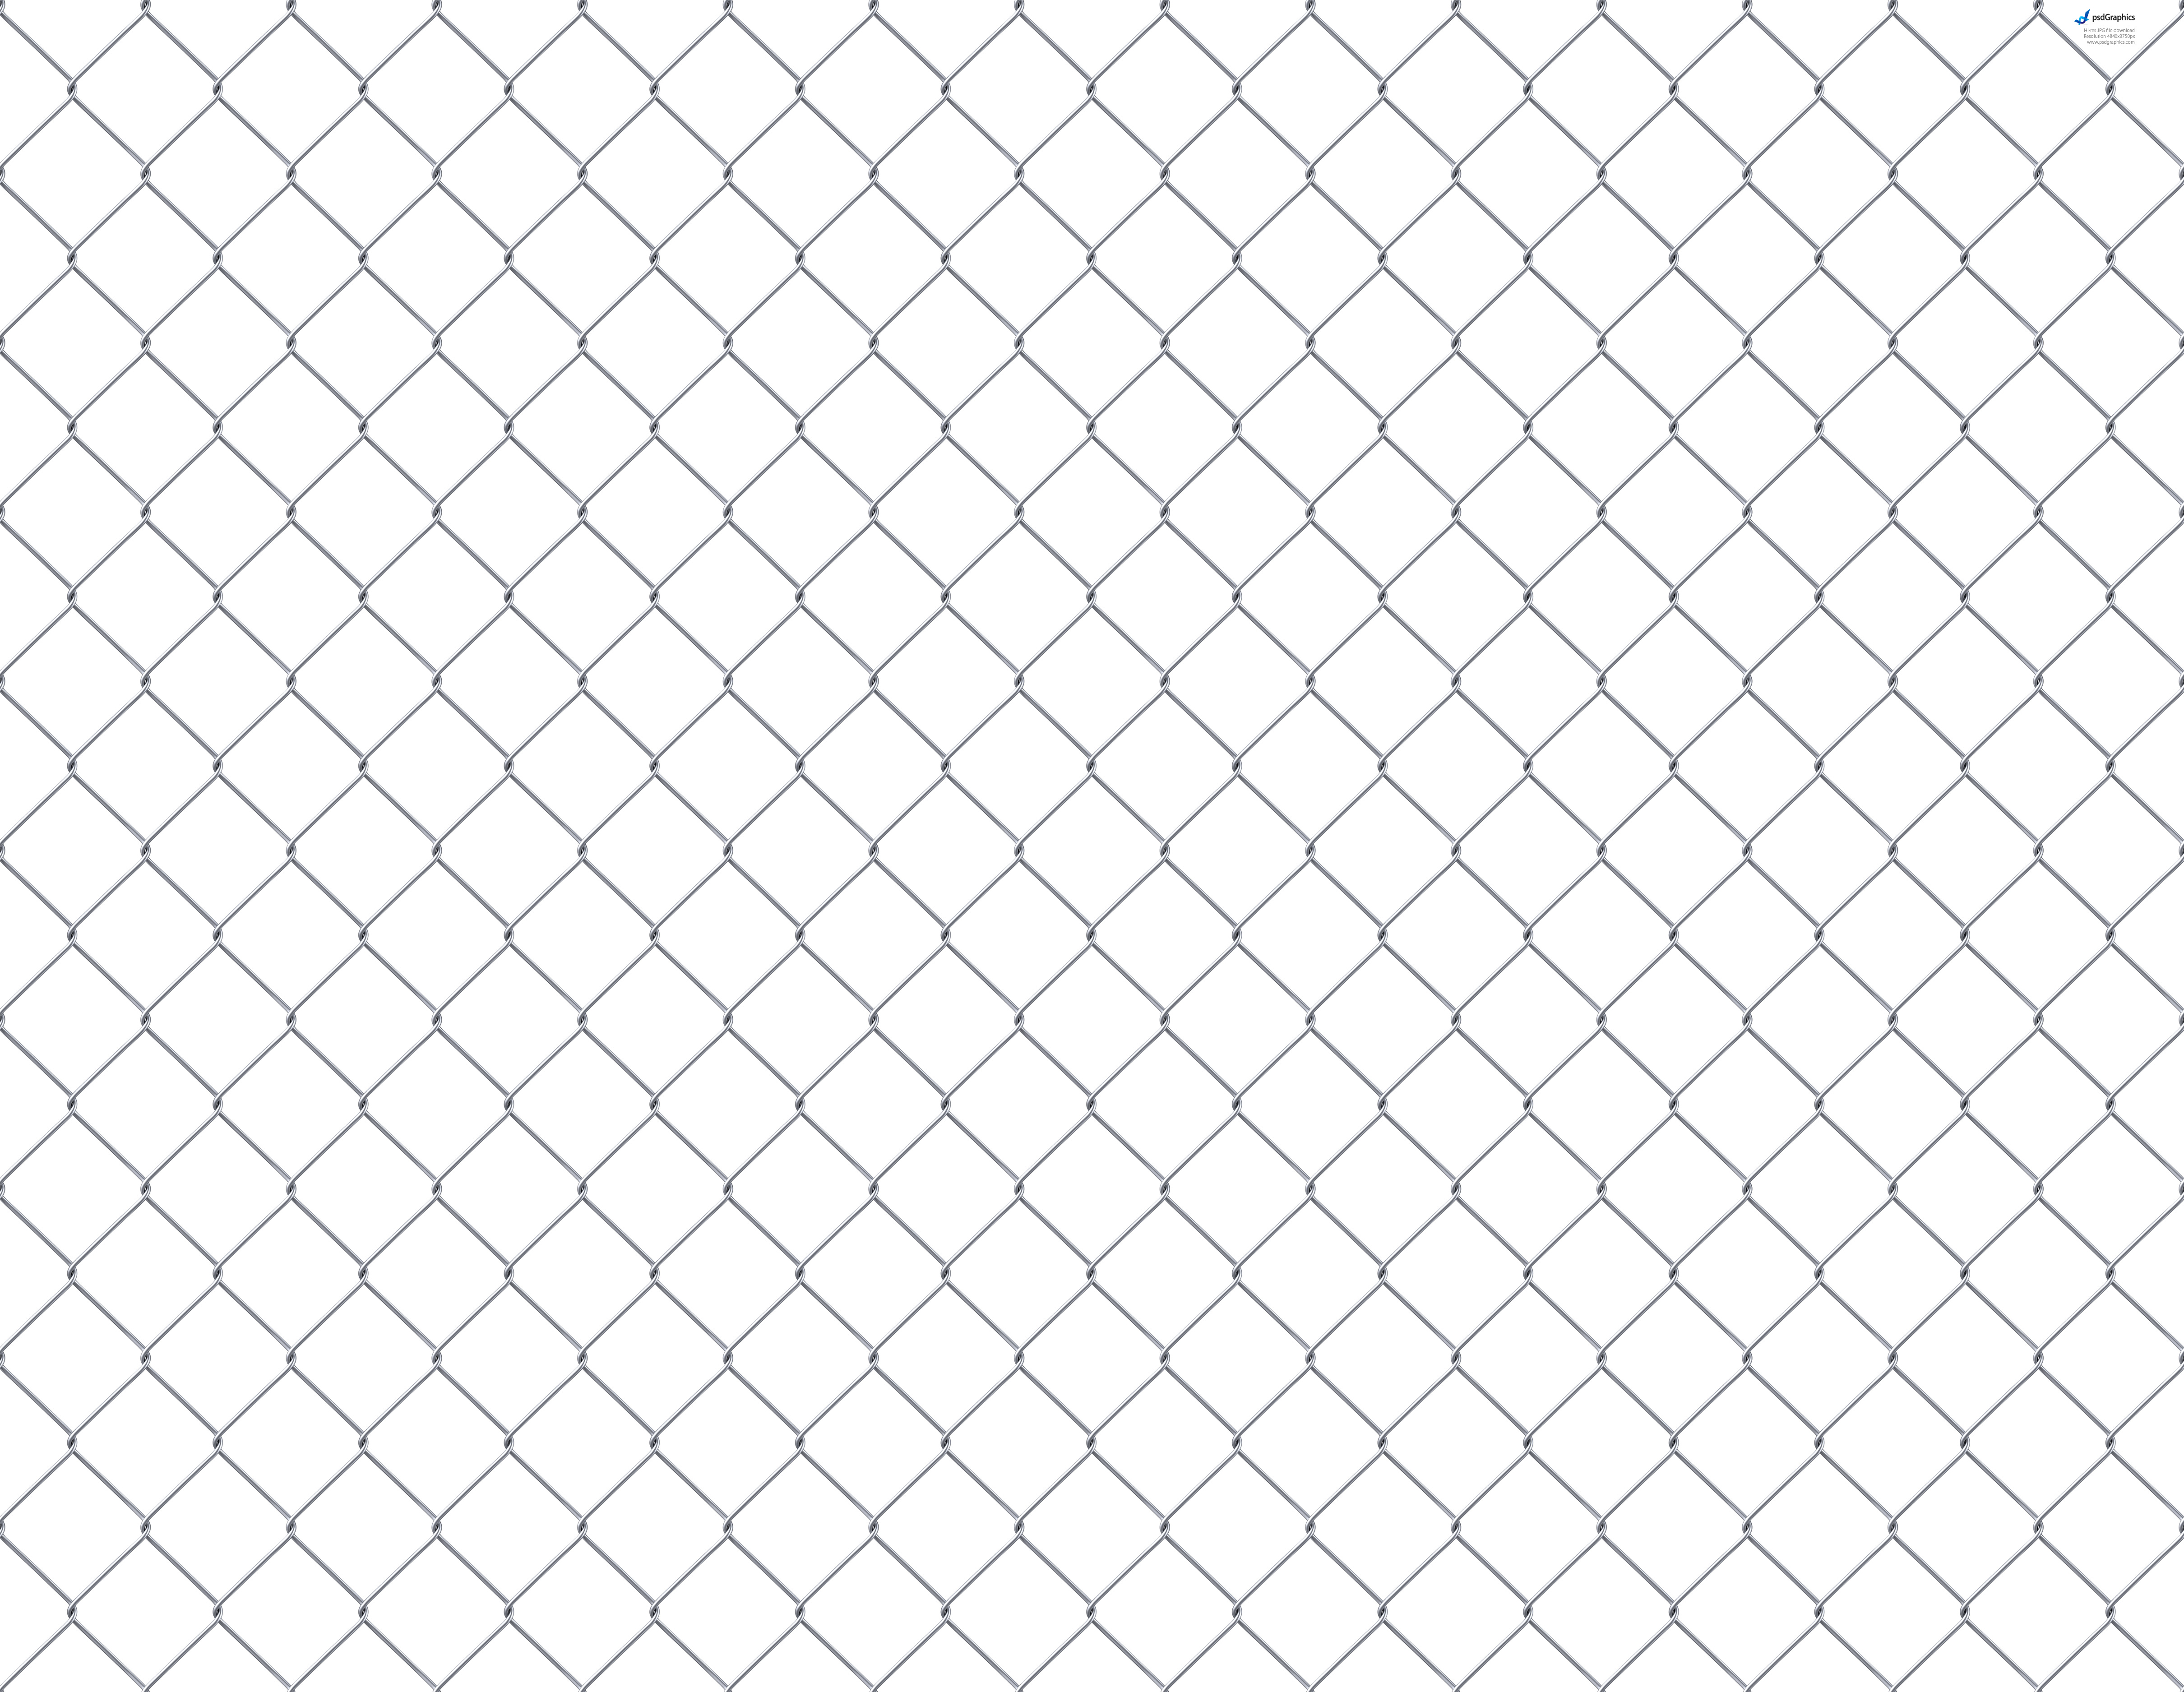 Chainlink fence - Fence PNG - Fence HD PNG